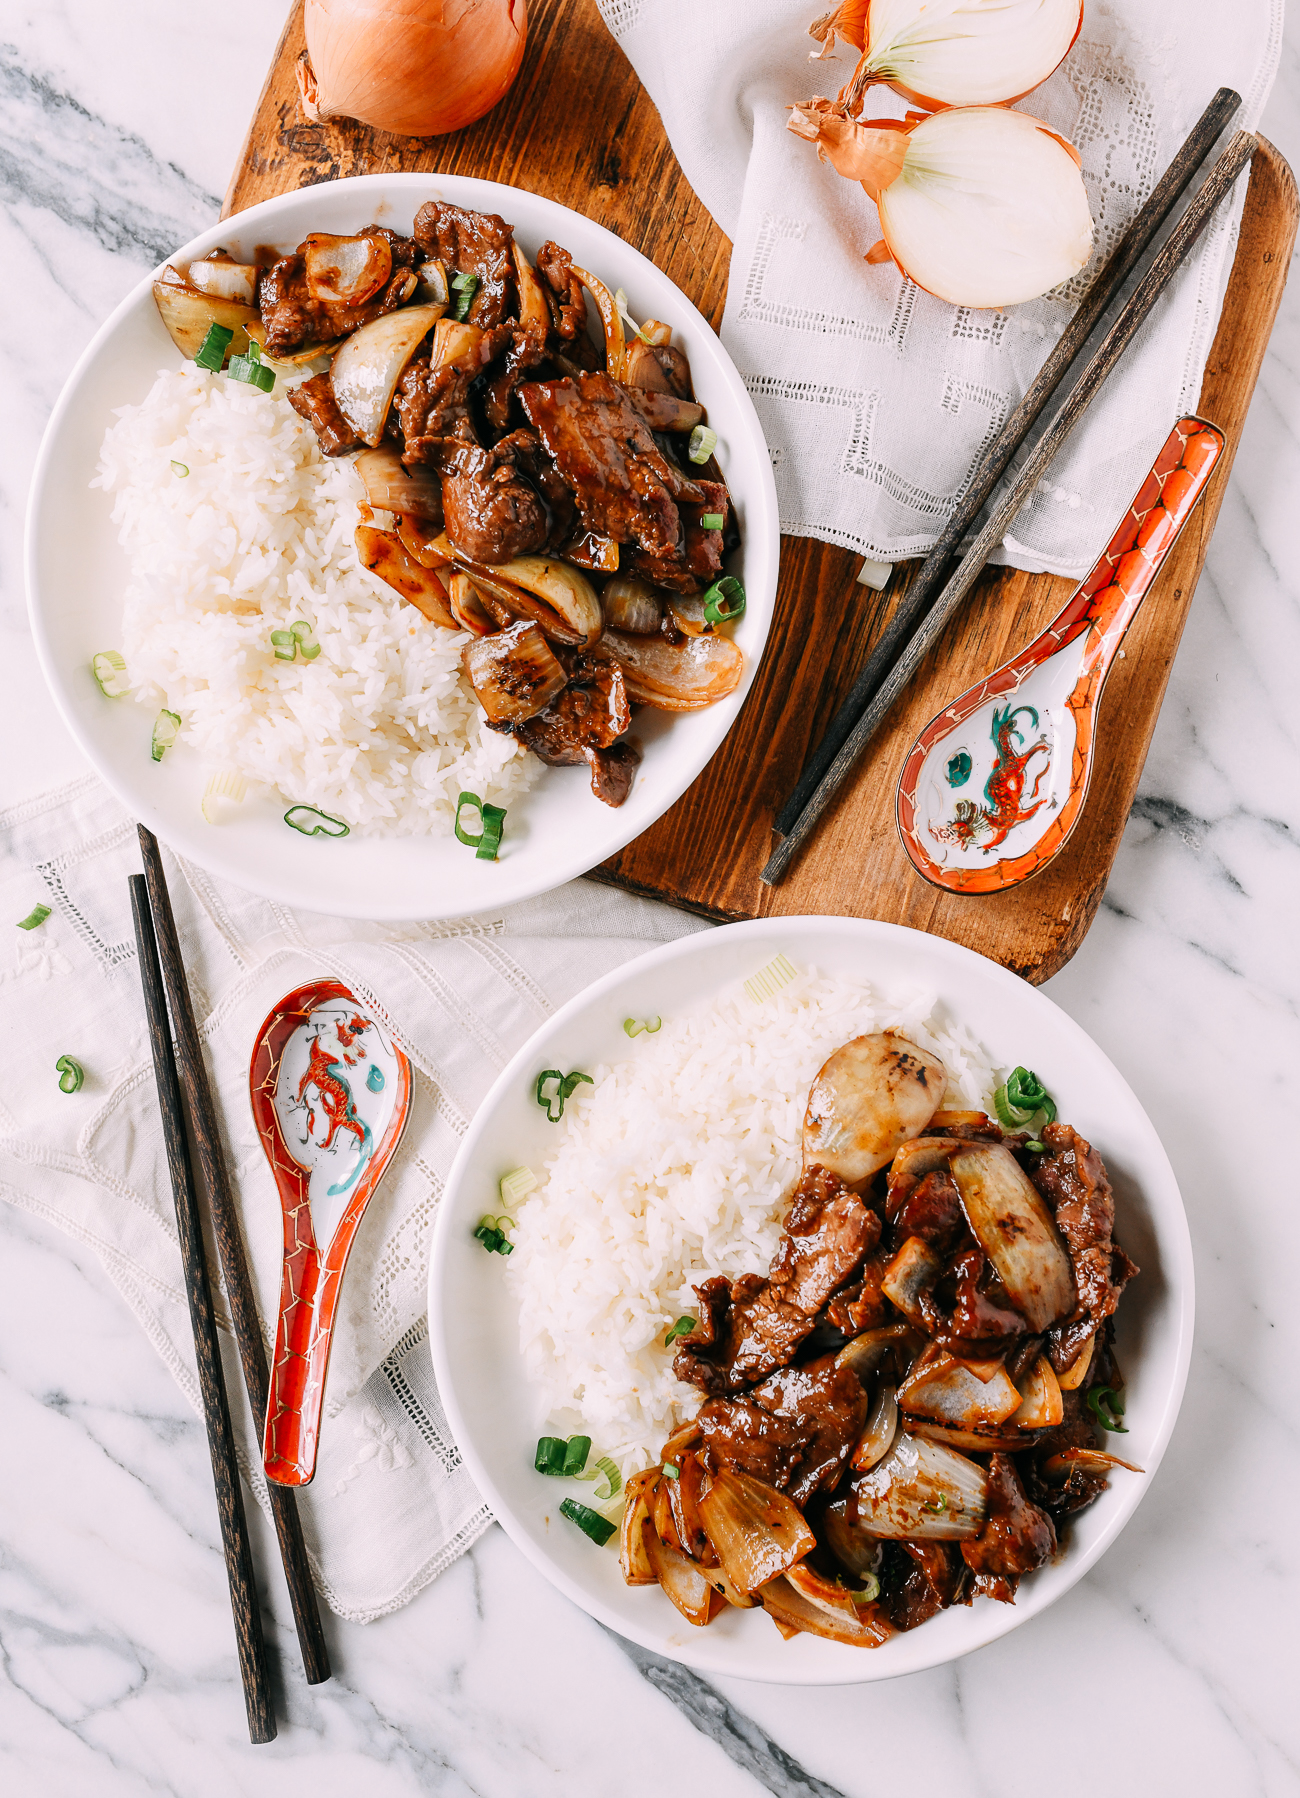 Beef Onion Stir-fry with white rice